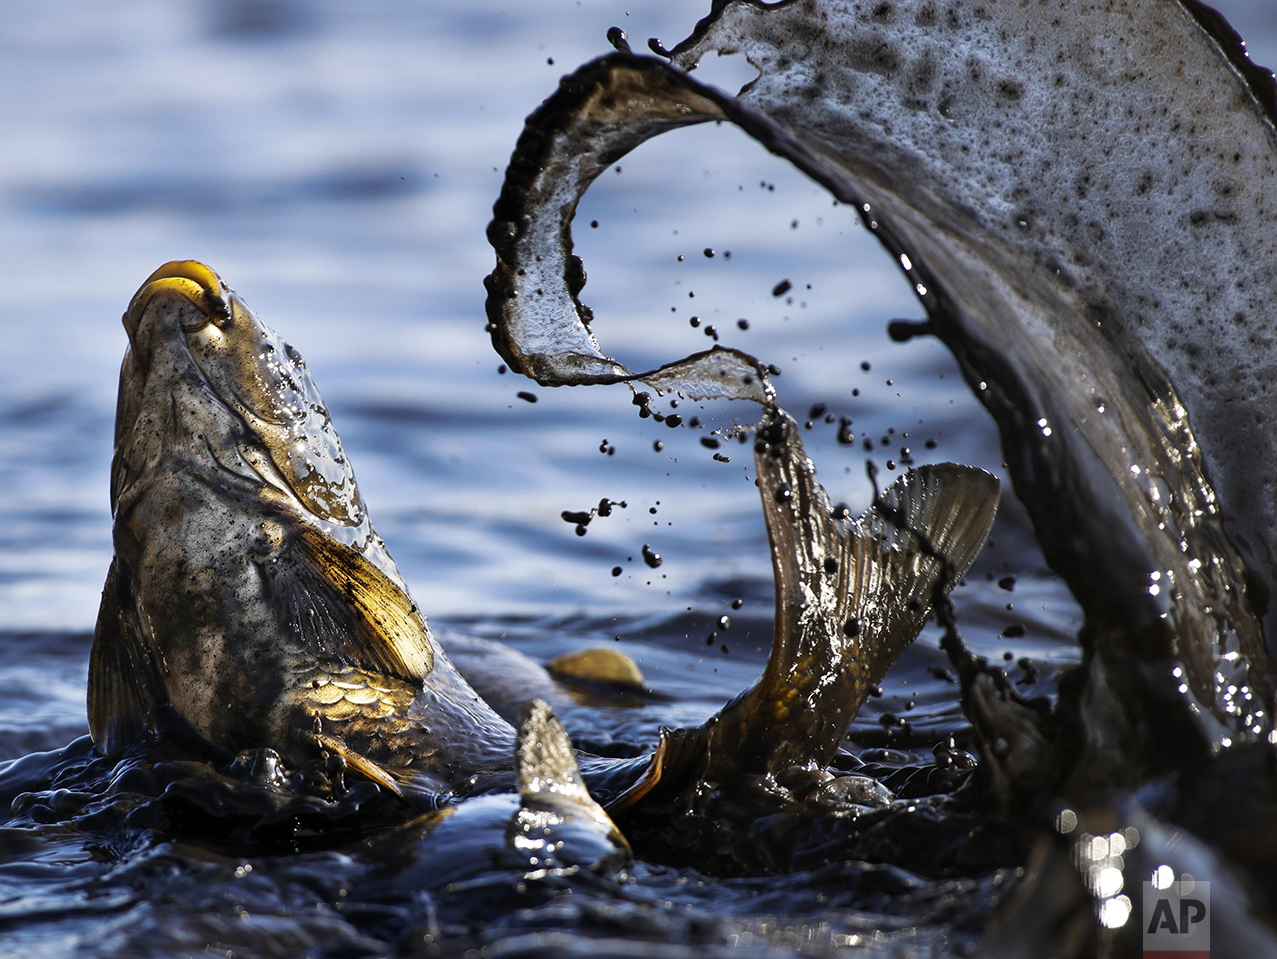 A fish splashes as it is caught by fish farm workers at a drained pond outside the village of Shkolny, 60 km (38 miles) west of Minsk, Belarus, on Oct. 18, 2016. The farm supplies their produce, mainly carp, to local stores. (AP Photo/Sergei Grits)